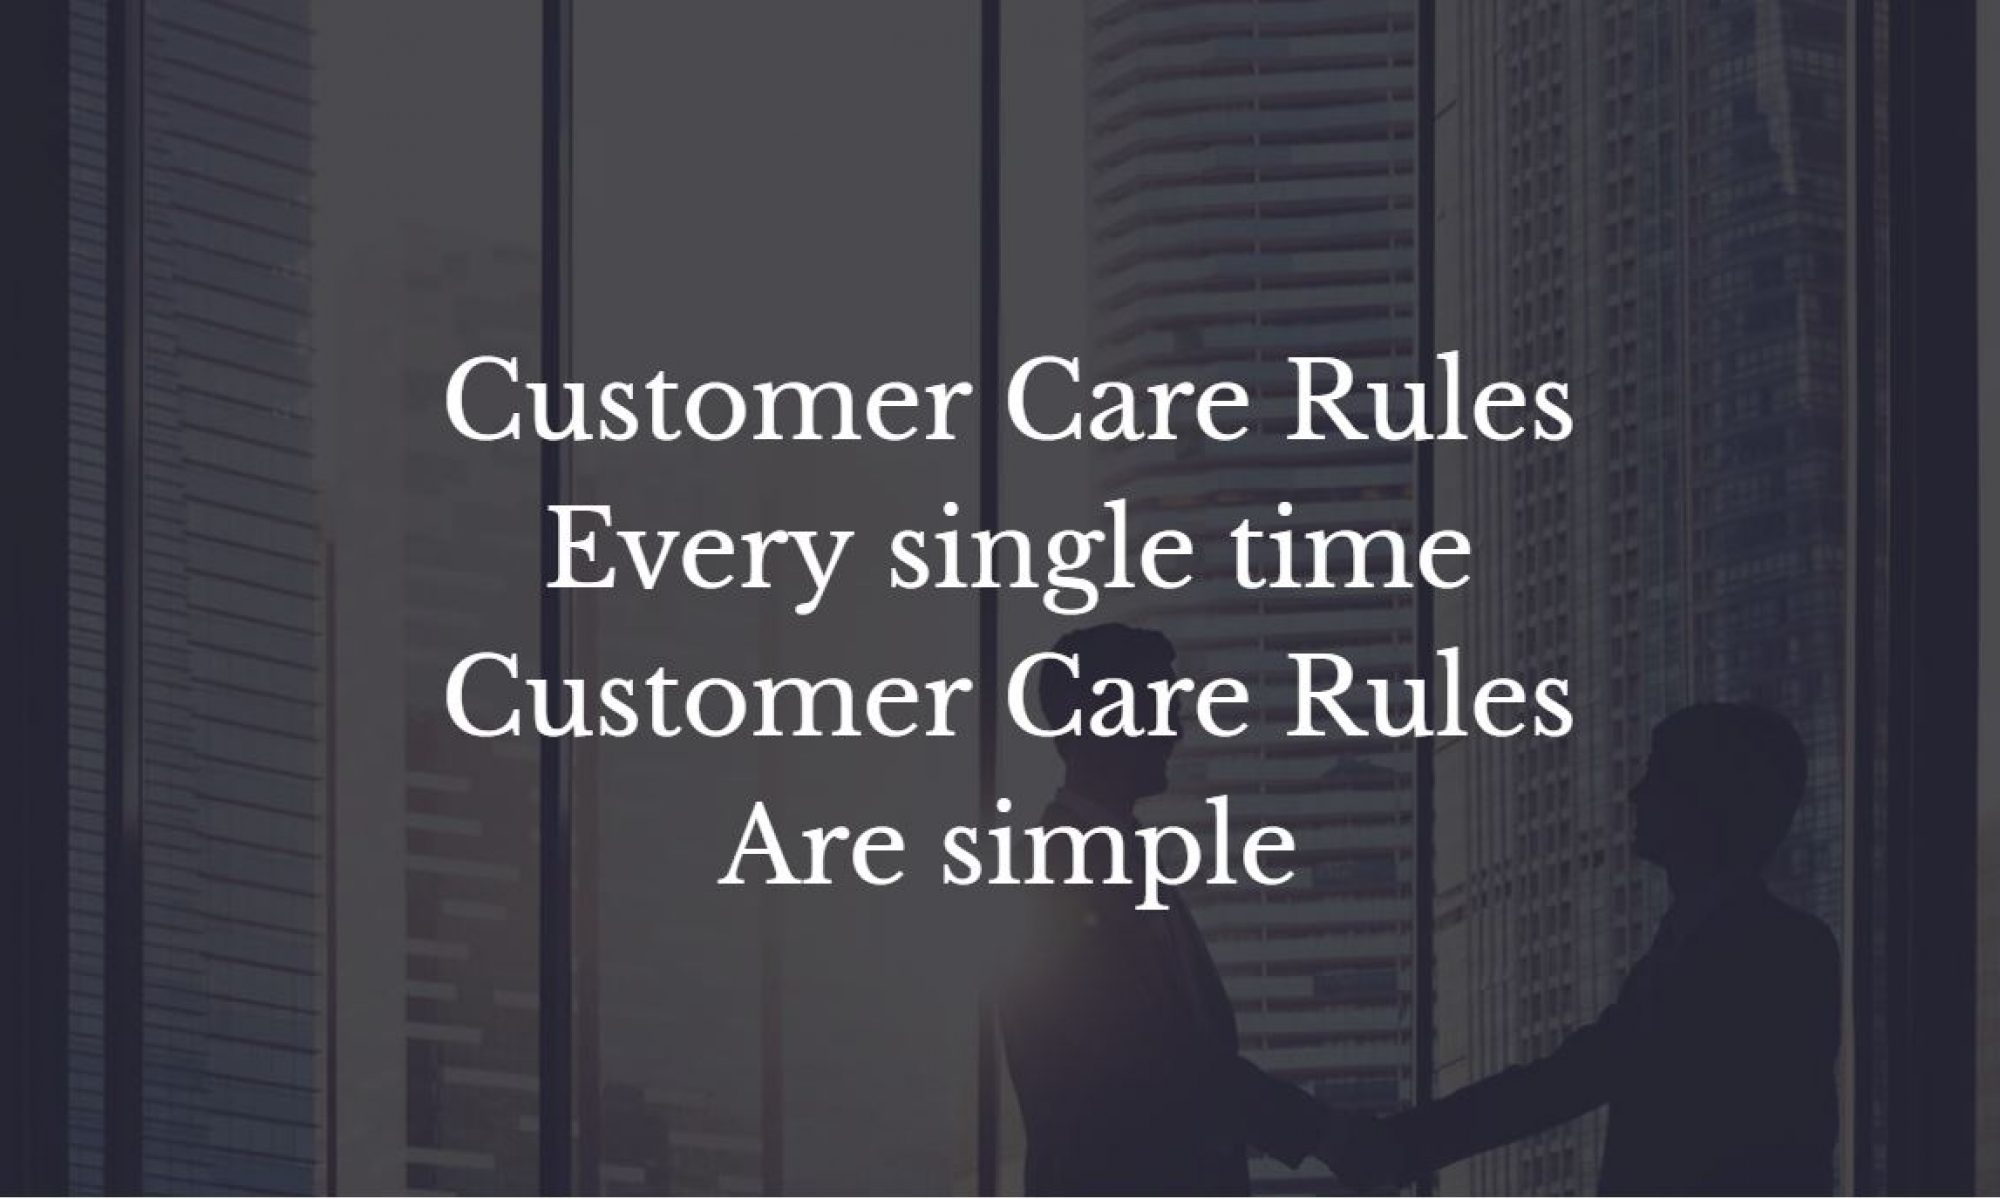 Customer Care Rules